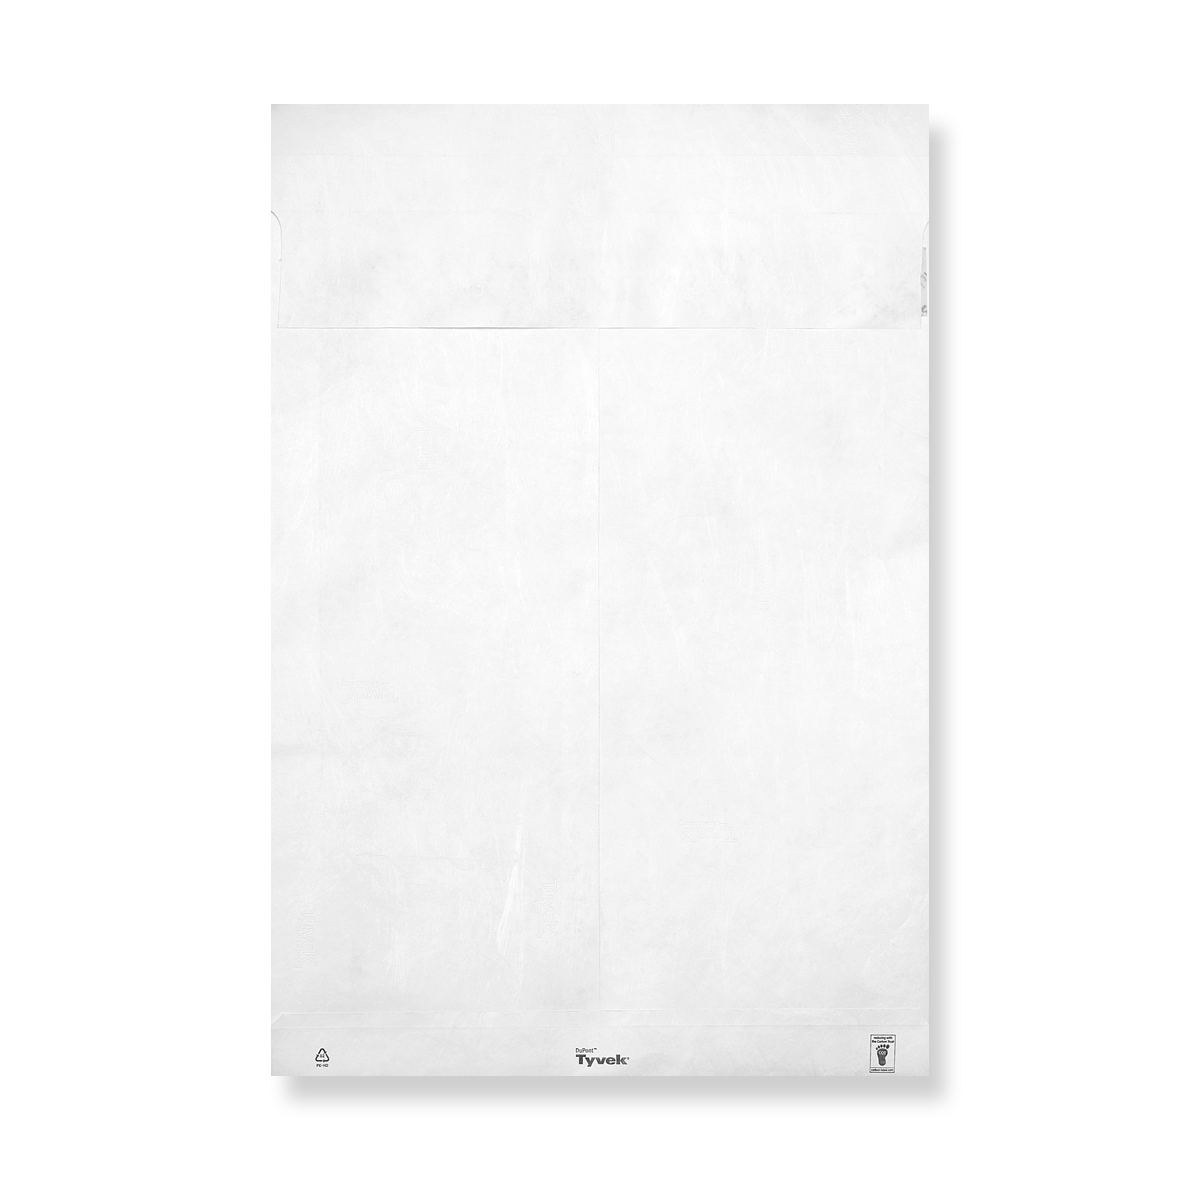 406 x 305mm WHITE TYVEK GUSSET ENVELOPES